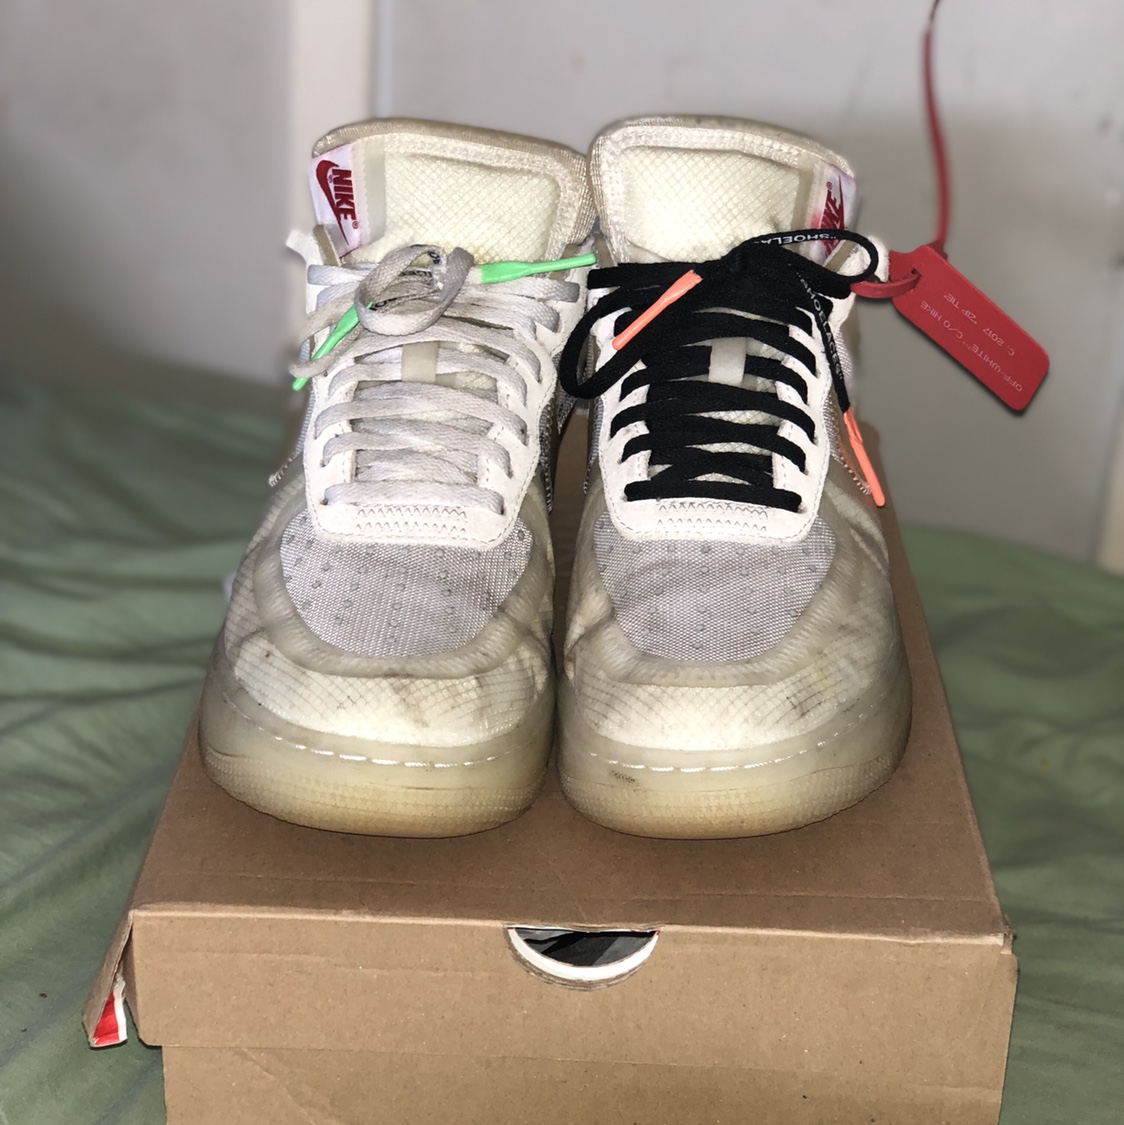 Air Force 1. 5/10. Been worn quite